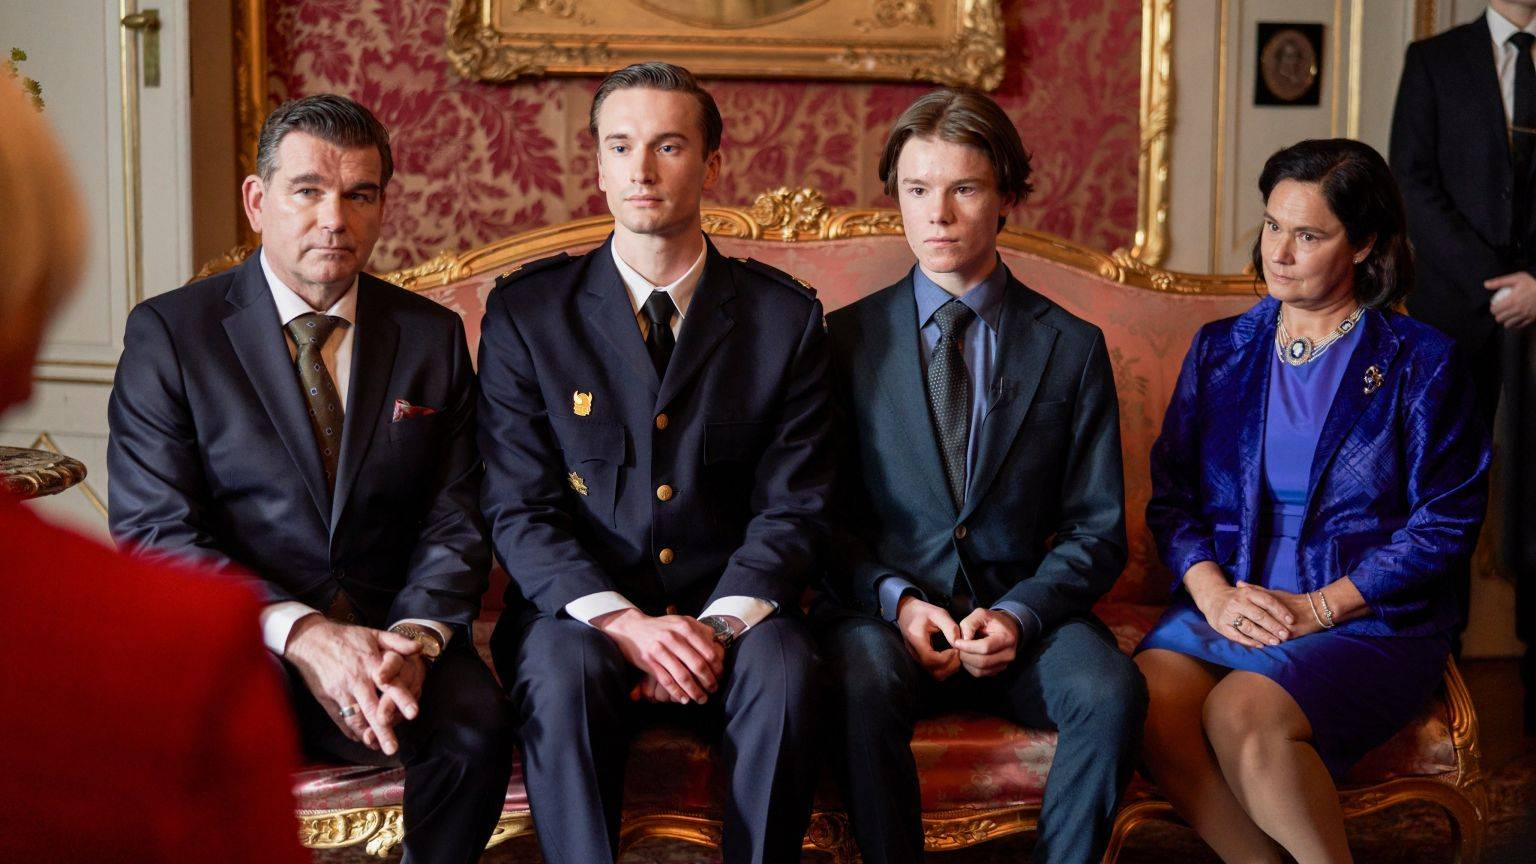 A Swedish prince must go to boarding school in the first teaser of Netflix  series 'Young Royals' - Paudal